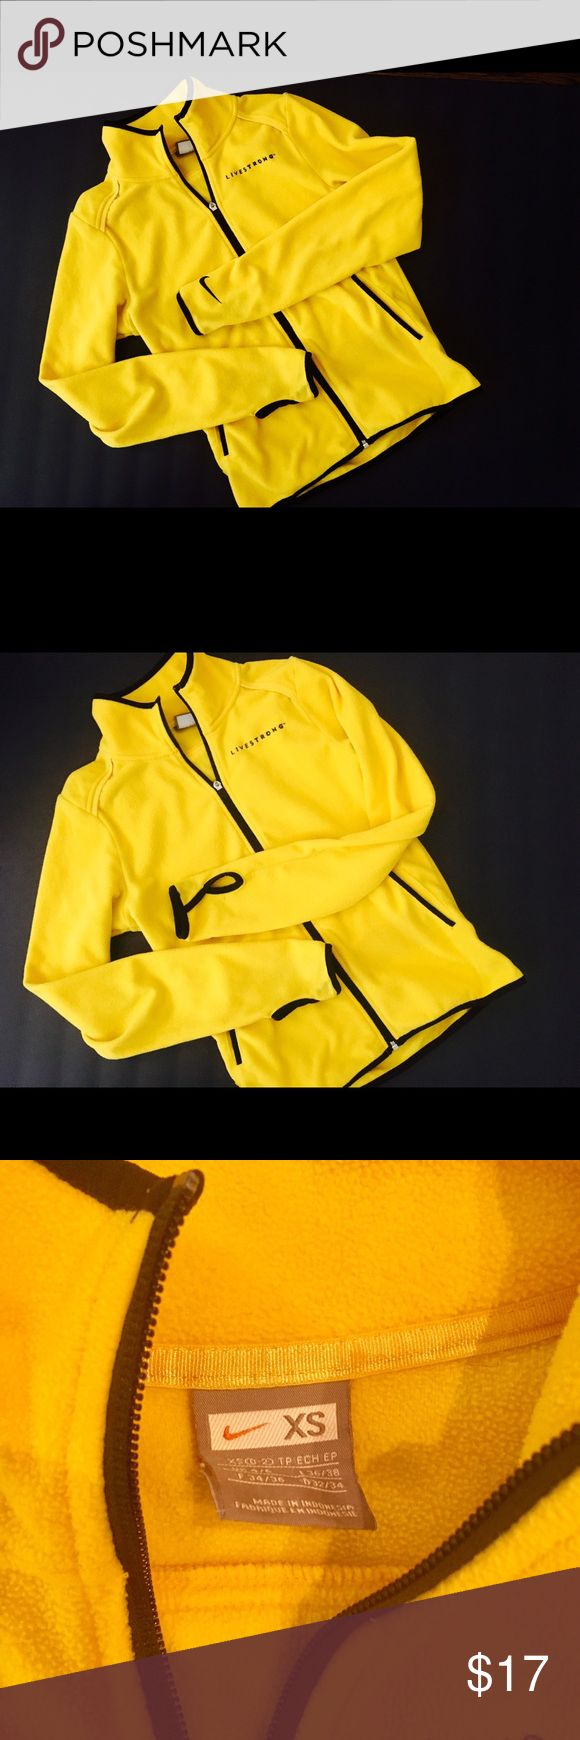 Nike Livestrong zip front fleece jacket XS. Nike Livestrong fleece zip front Jacket. Women's Size XS. Bright yellow with black trim. Thumb holes. Shows some wear from normal use, but still looks very nice. No rips holes or stains. There is a slight fading of the black trim on one sleeve. (Last pic.) Not very noticeable. Women's Size XS. Nike Jackets & Coats